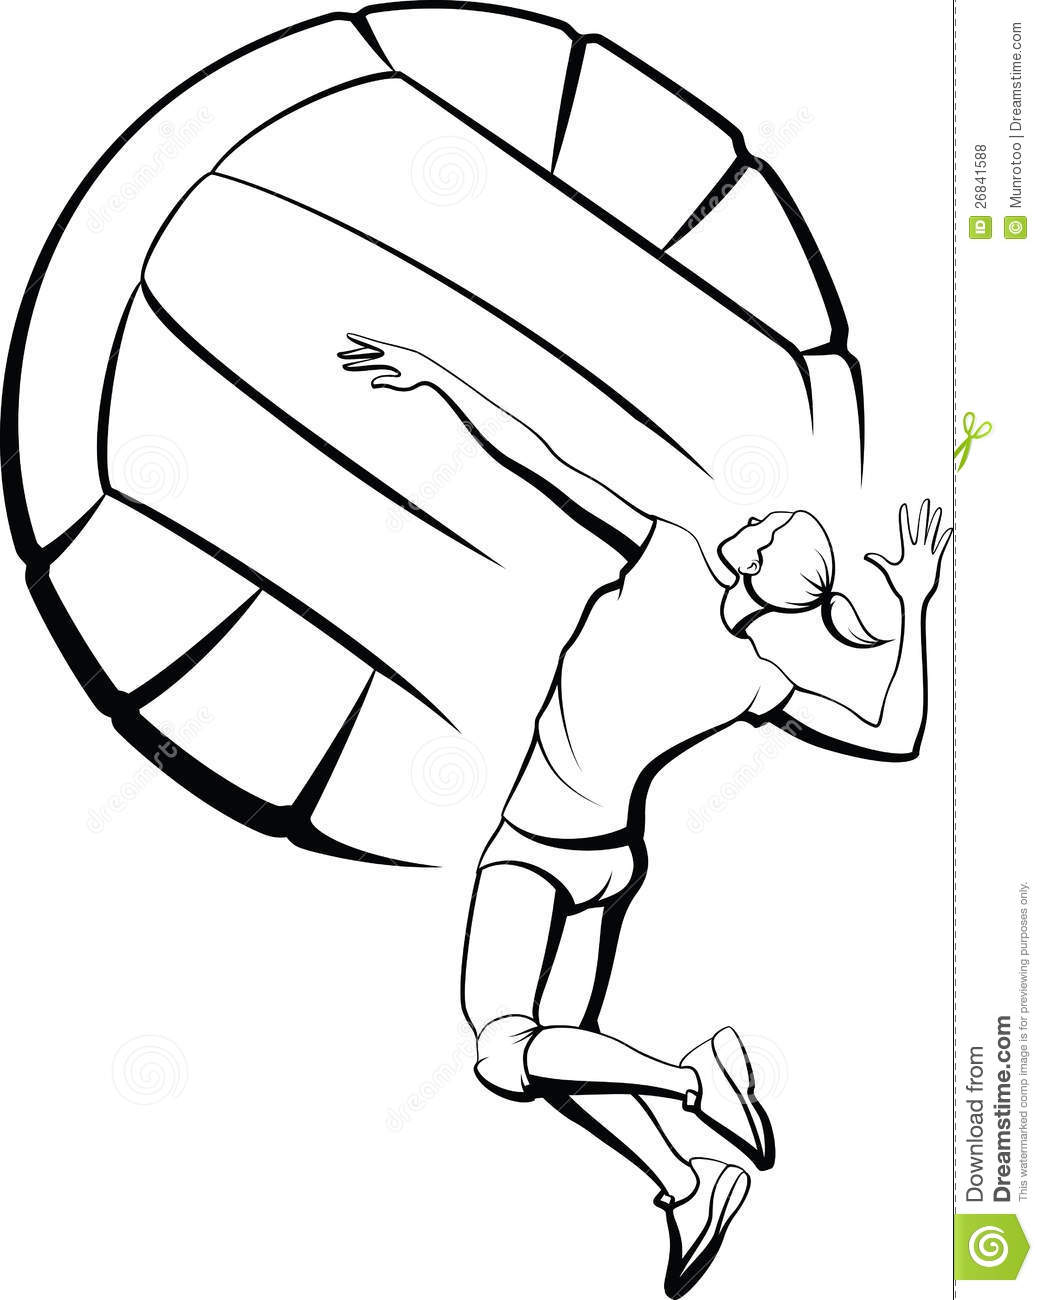 Line Art Download : Volleyball girl spiking royalty free stock photos image